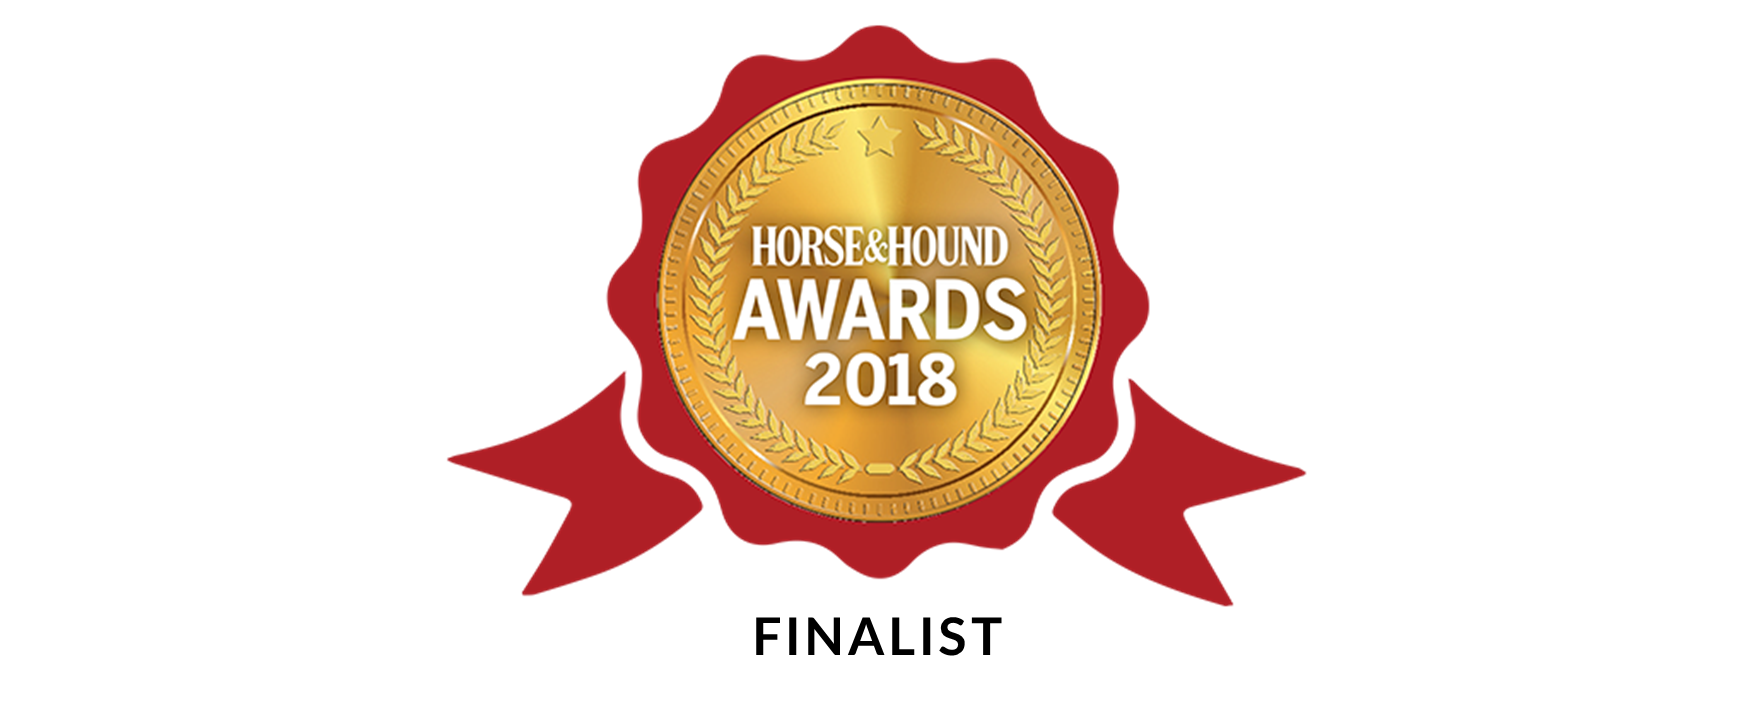 Horse & Hound Awards 2018